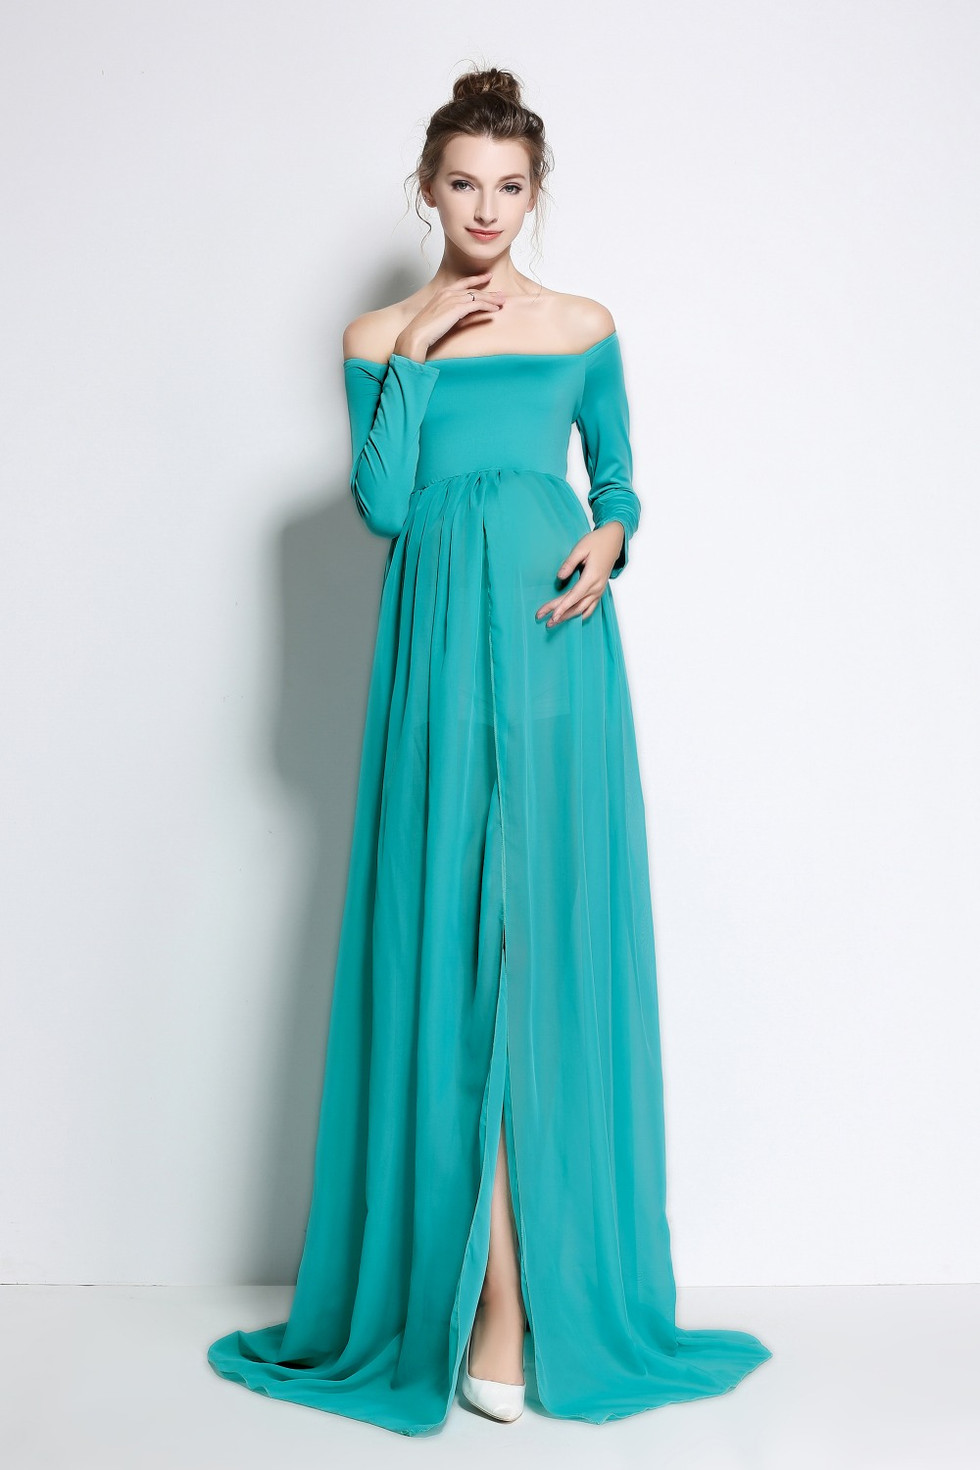 Large Teal Sheer Gown - Open in front.